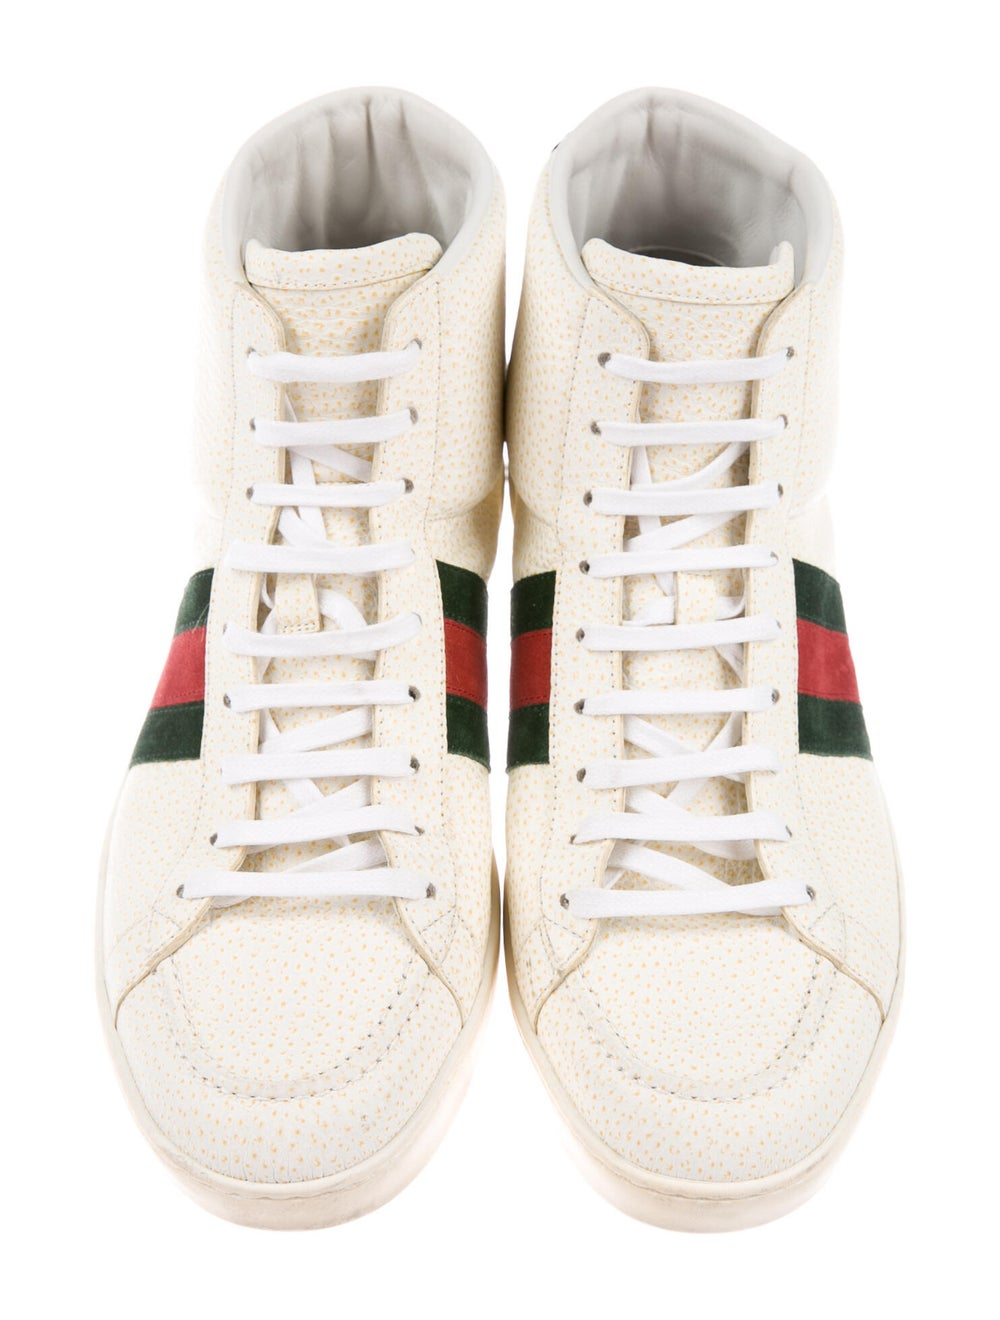 Gucci Web Accent Leather Sneakers - image 3